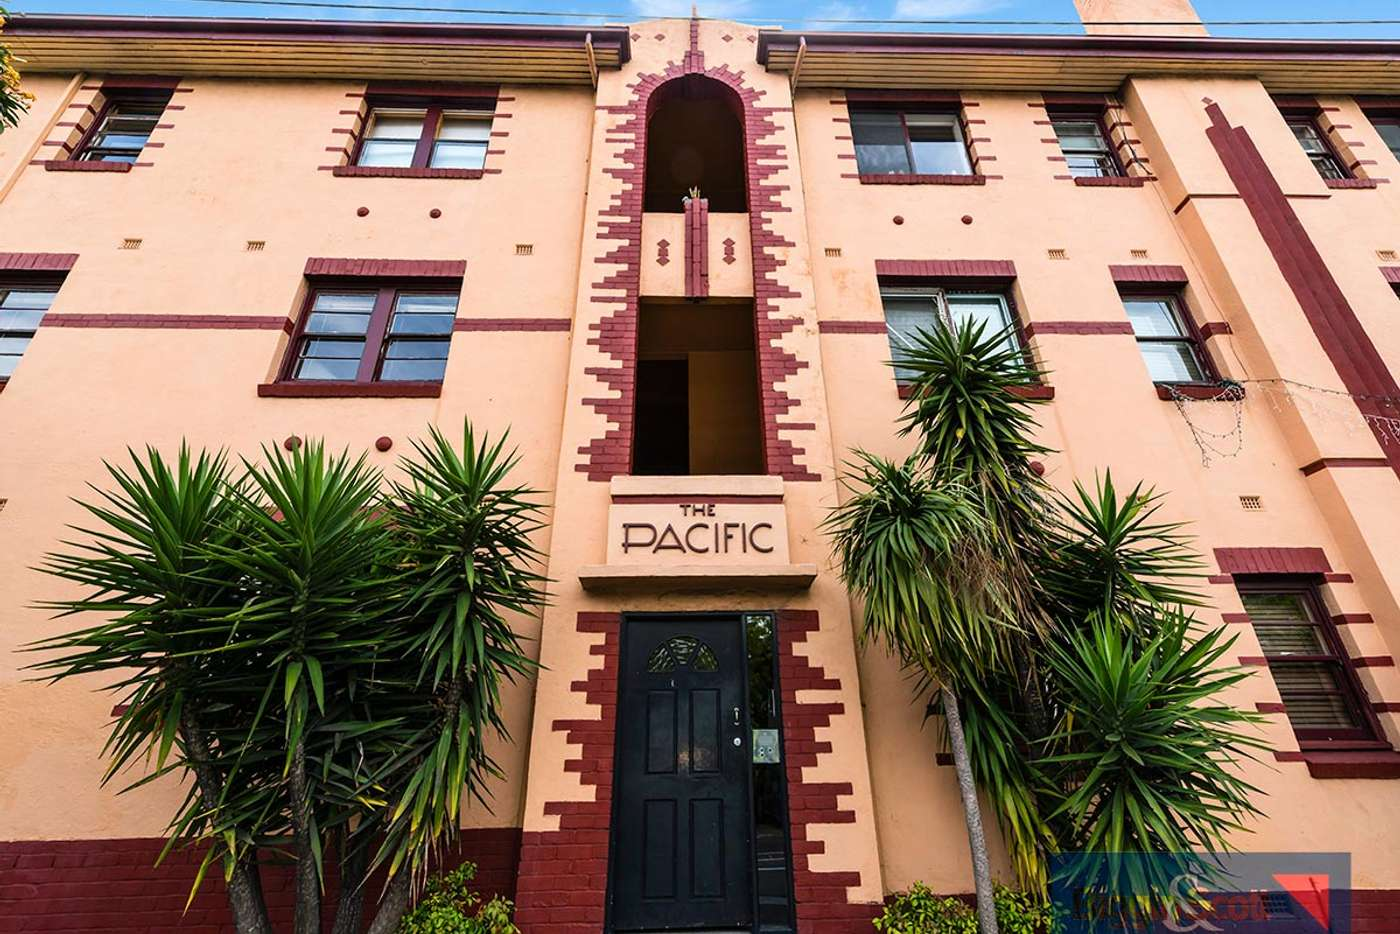 Main view of Homely apartment listing, 15/103 Barkly Street, St Kilda VIC 3182